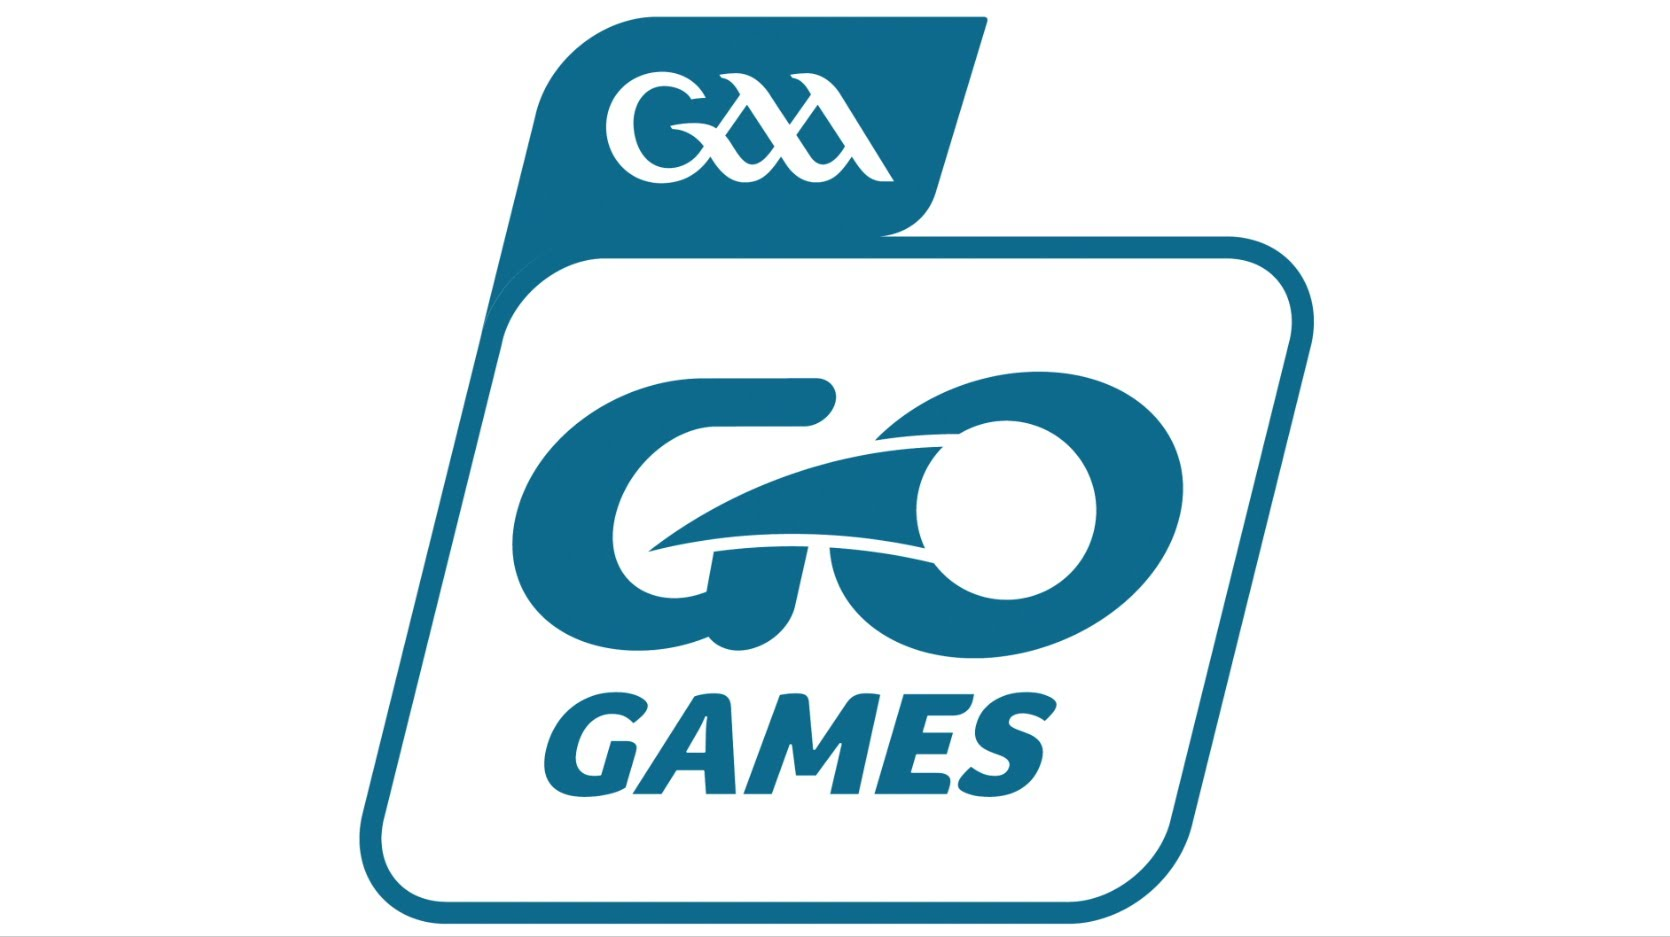 Connacht GAA GO Games Takes Place This Weekend